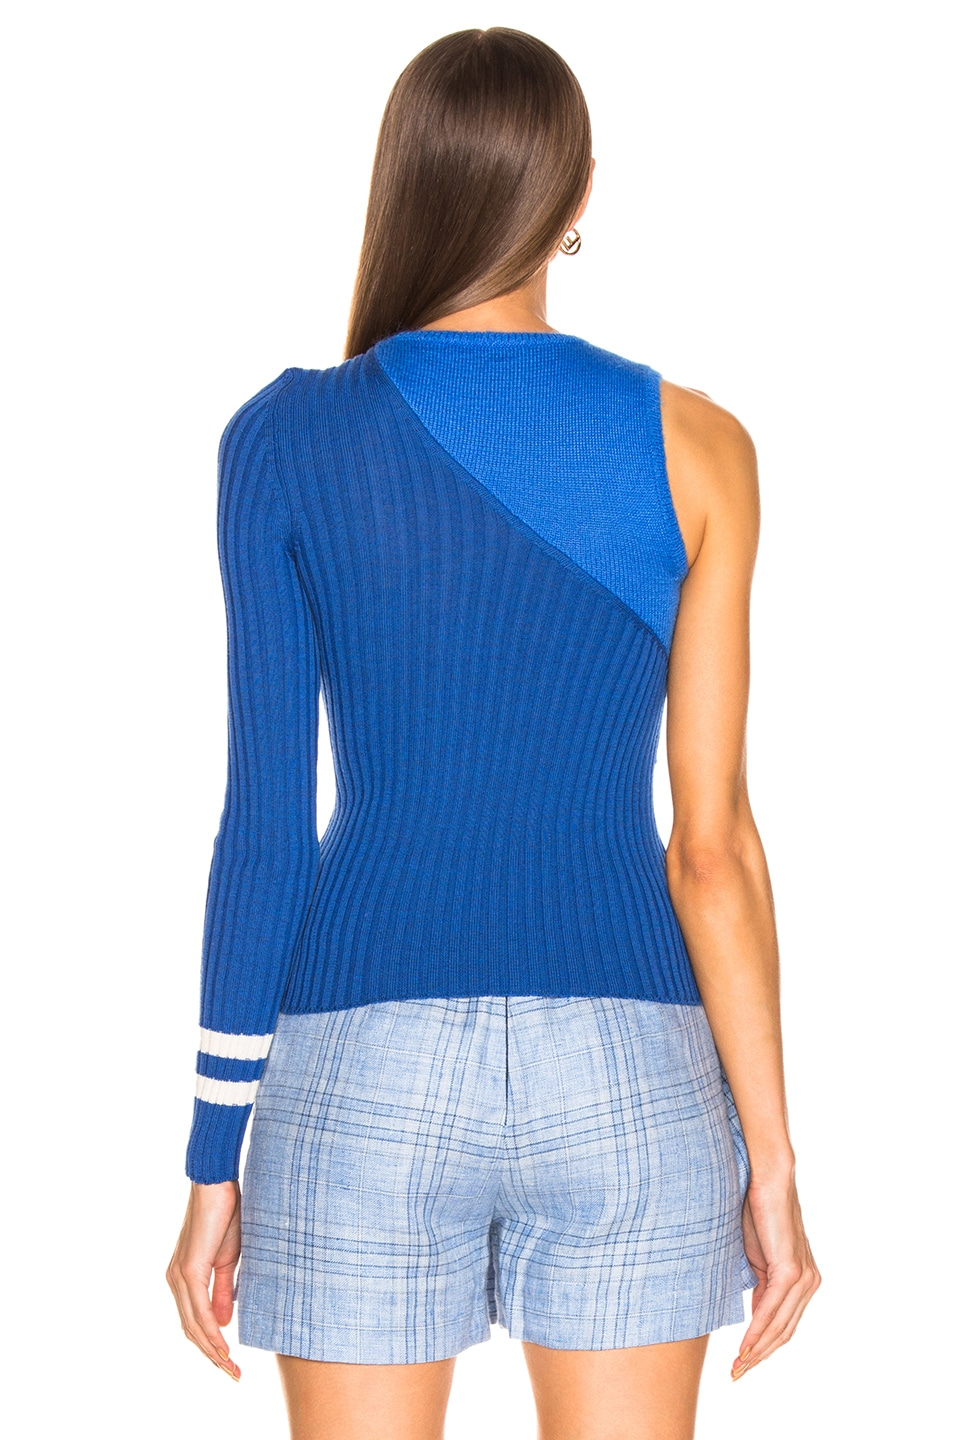 Maggie Marilyn I\ Royal Blue free shipping